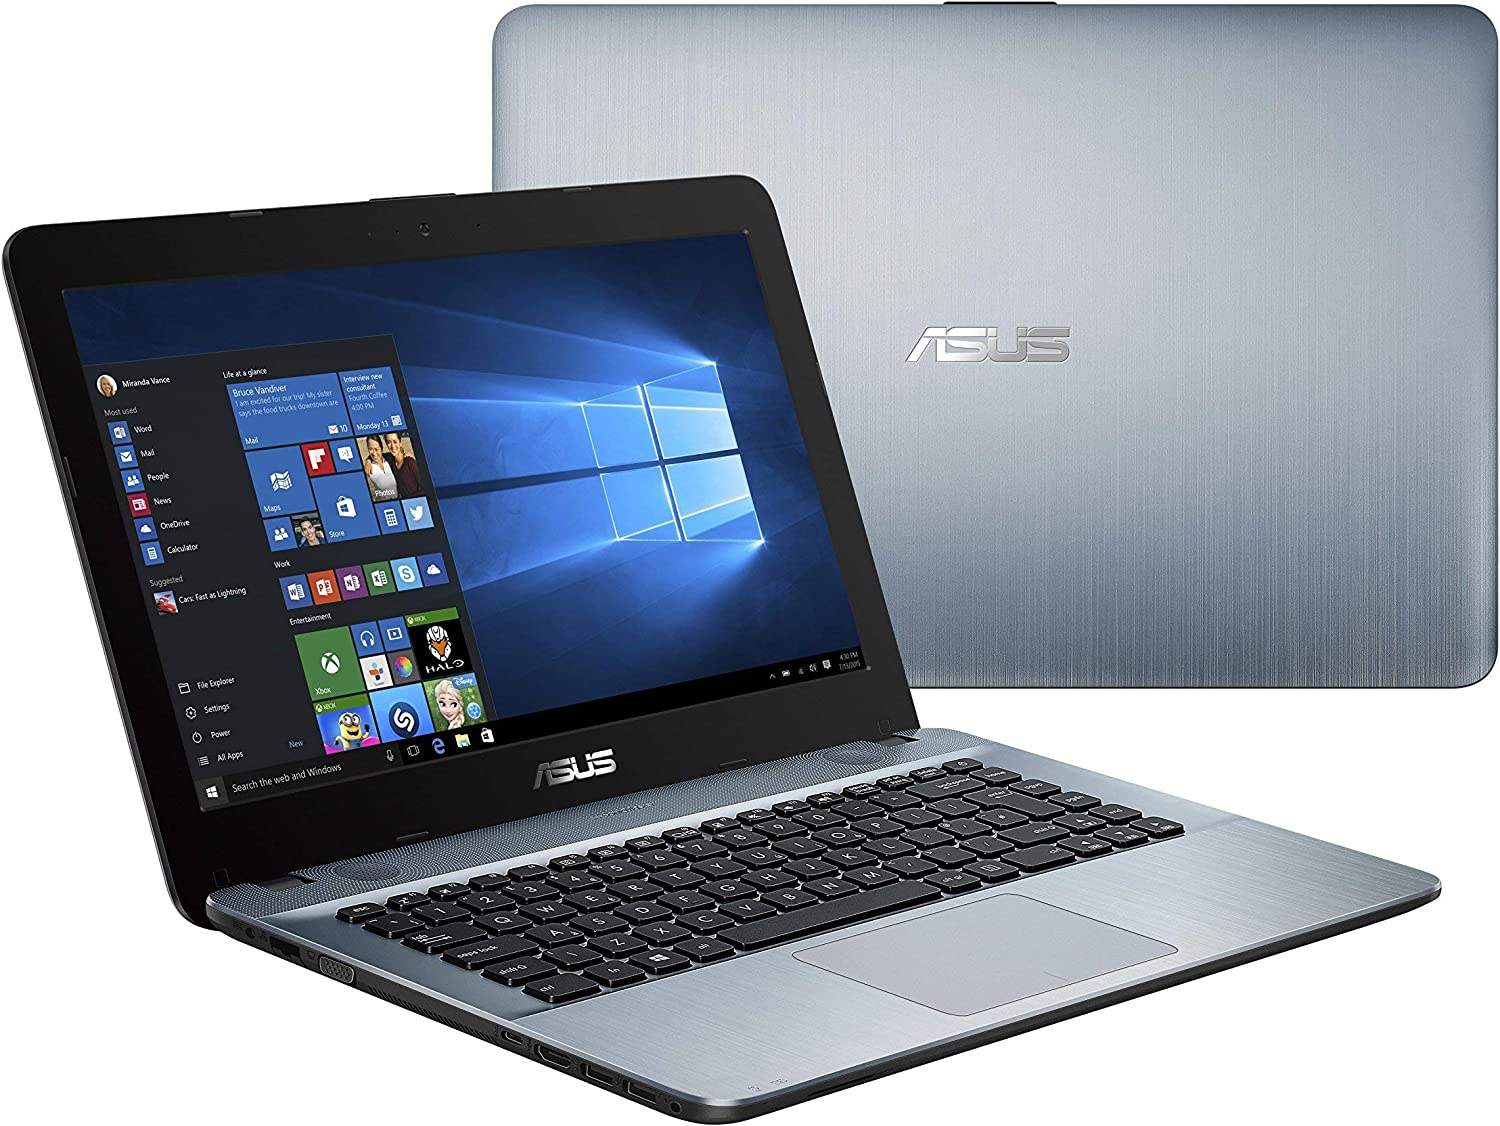 "New 2019 Flagship ASUS X441BA - 14"" HD AMD A6-9225 up to 3.0GHz, 4GB DDR4 RAM, 500GB HDD, AMD Radeon R4, WiFi, Bluetooth, USB 3.1 Type-C, HDMI, Silver Gradient, Windows 10 Home (Renewed)"